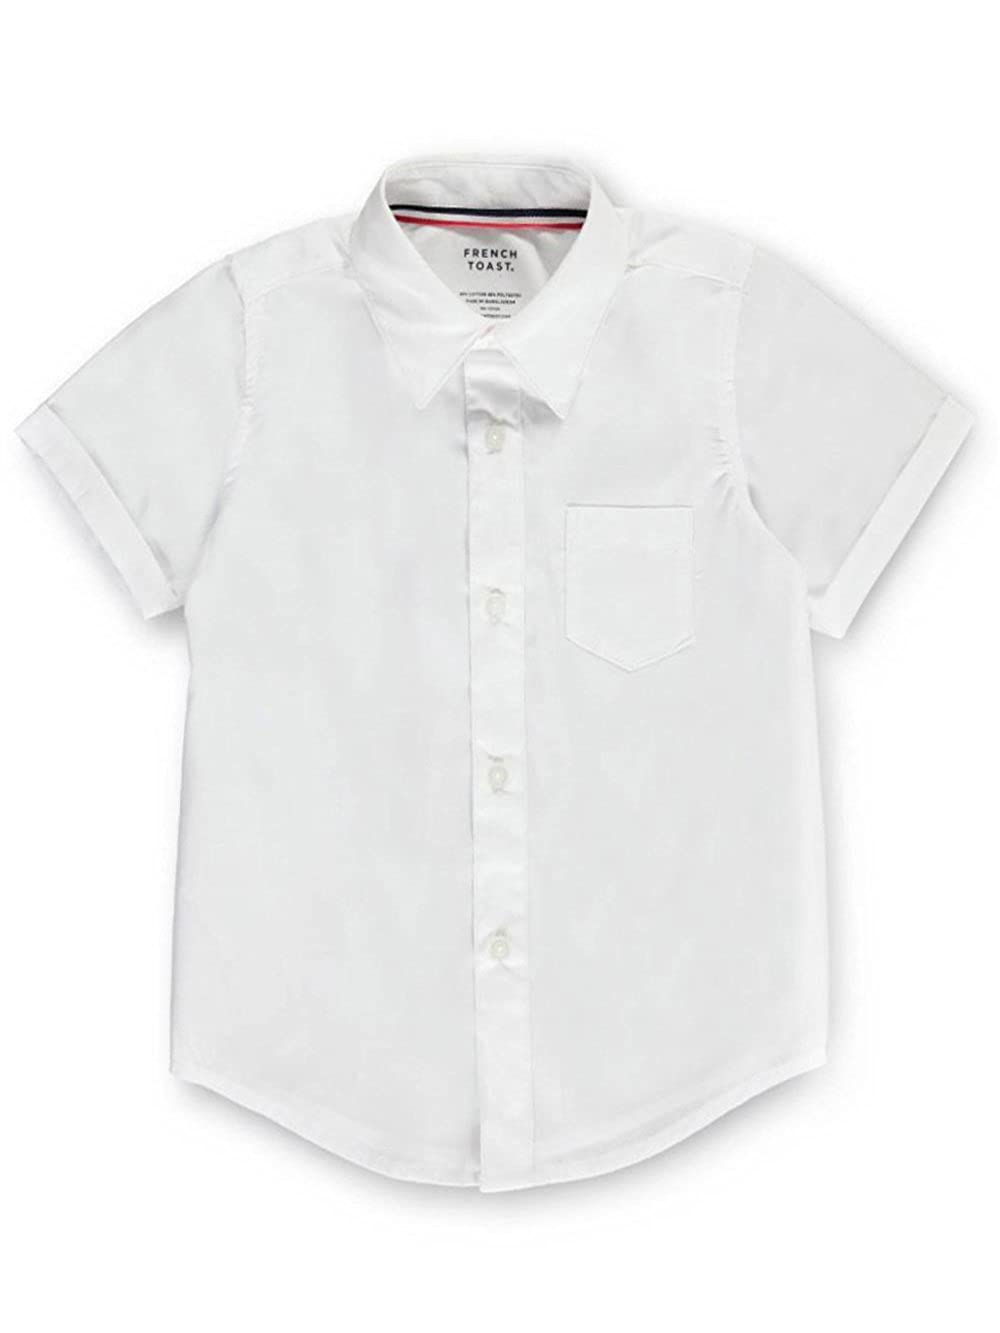 20 white French Toast Unisex S//S Button-Down Shirt